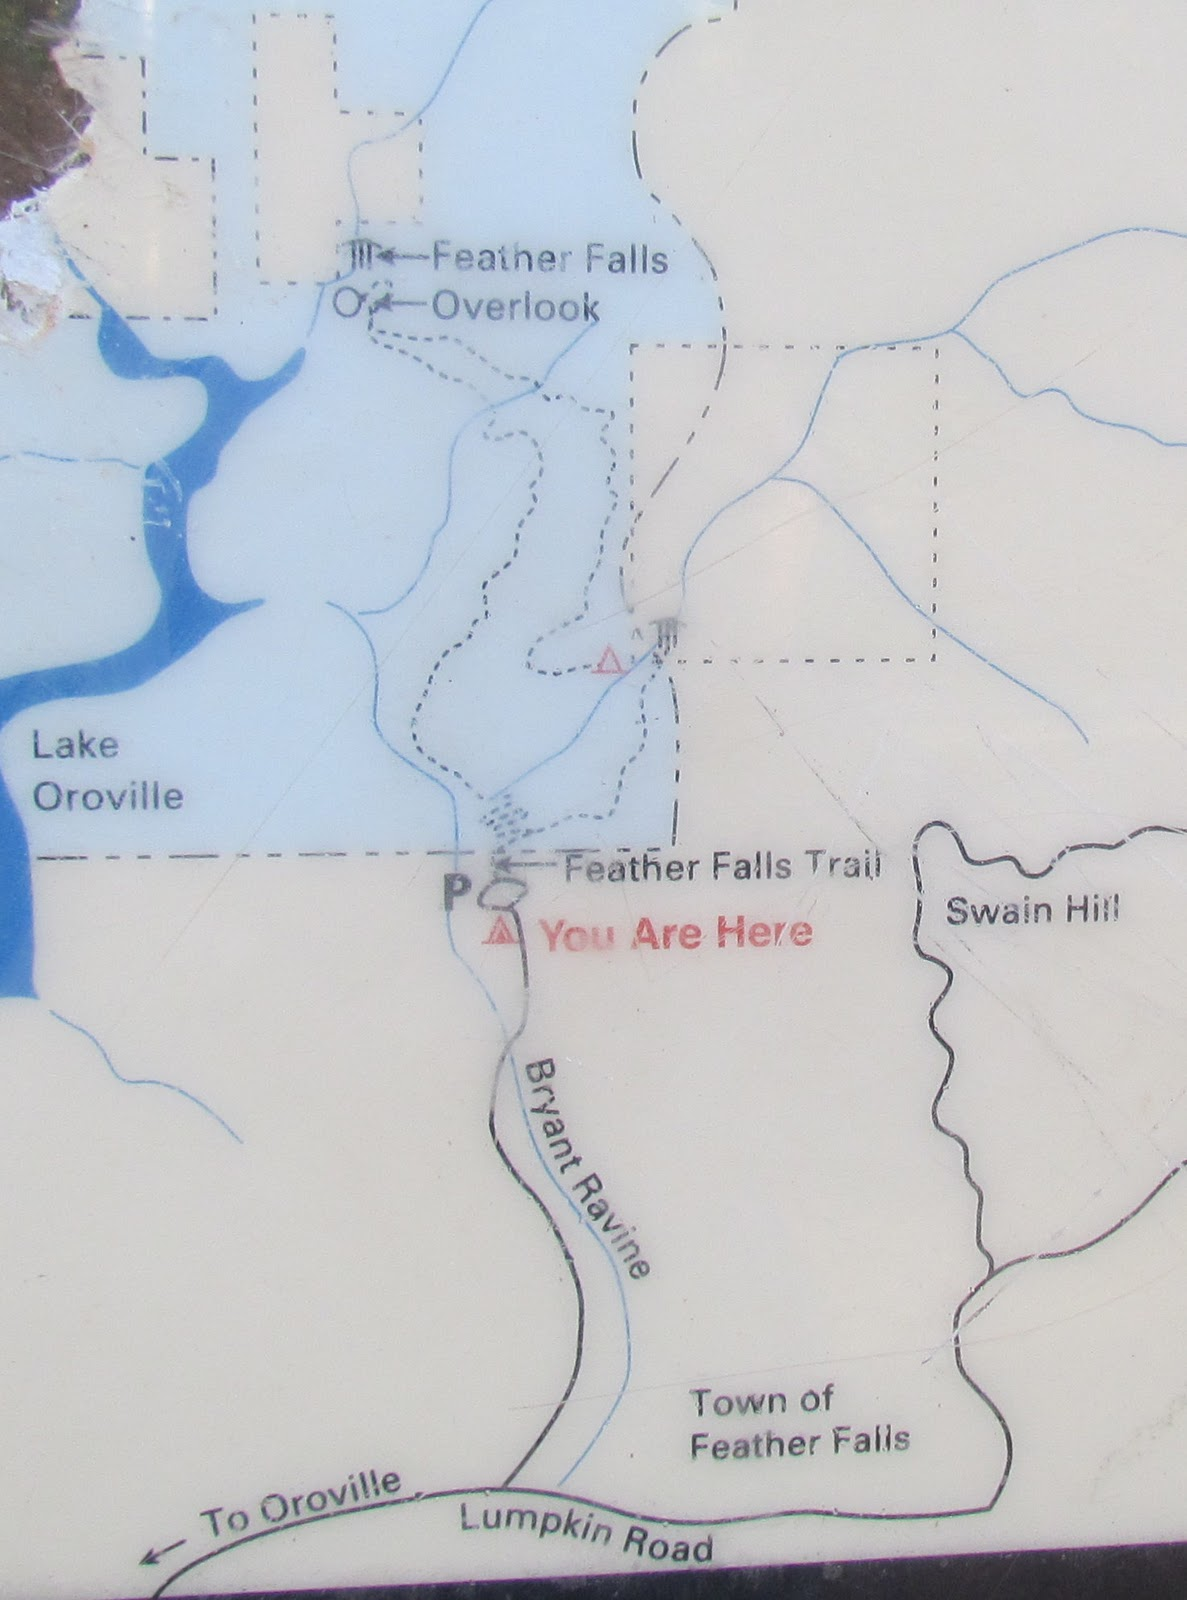 Lake Oroville Feather Falls Map